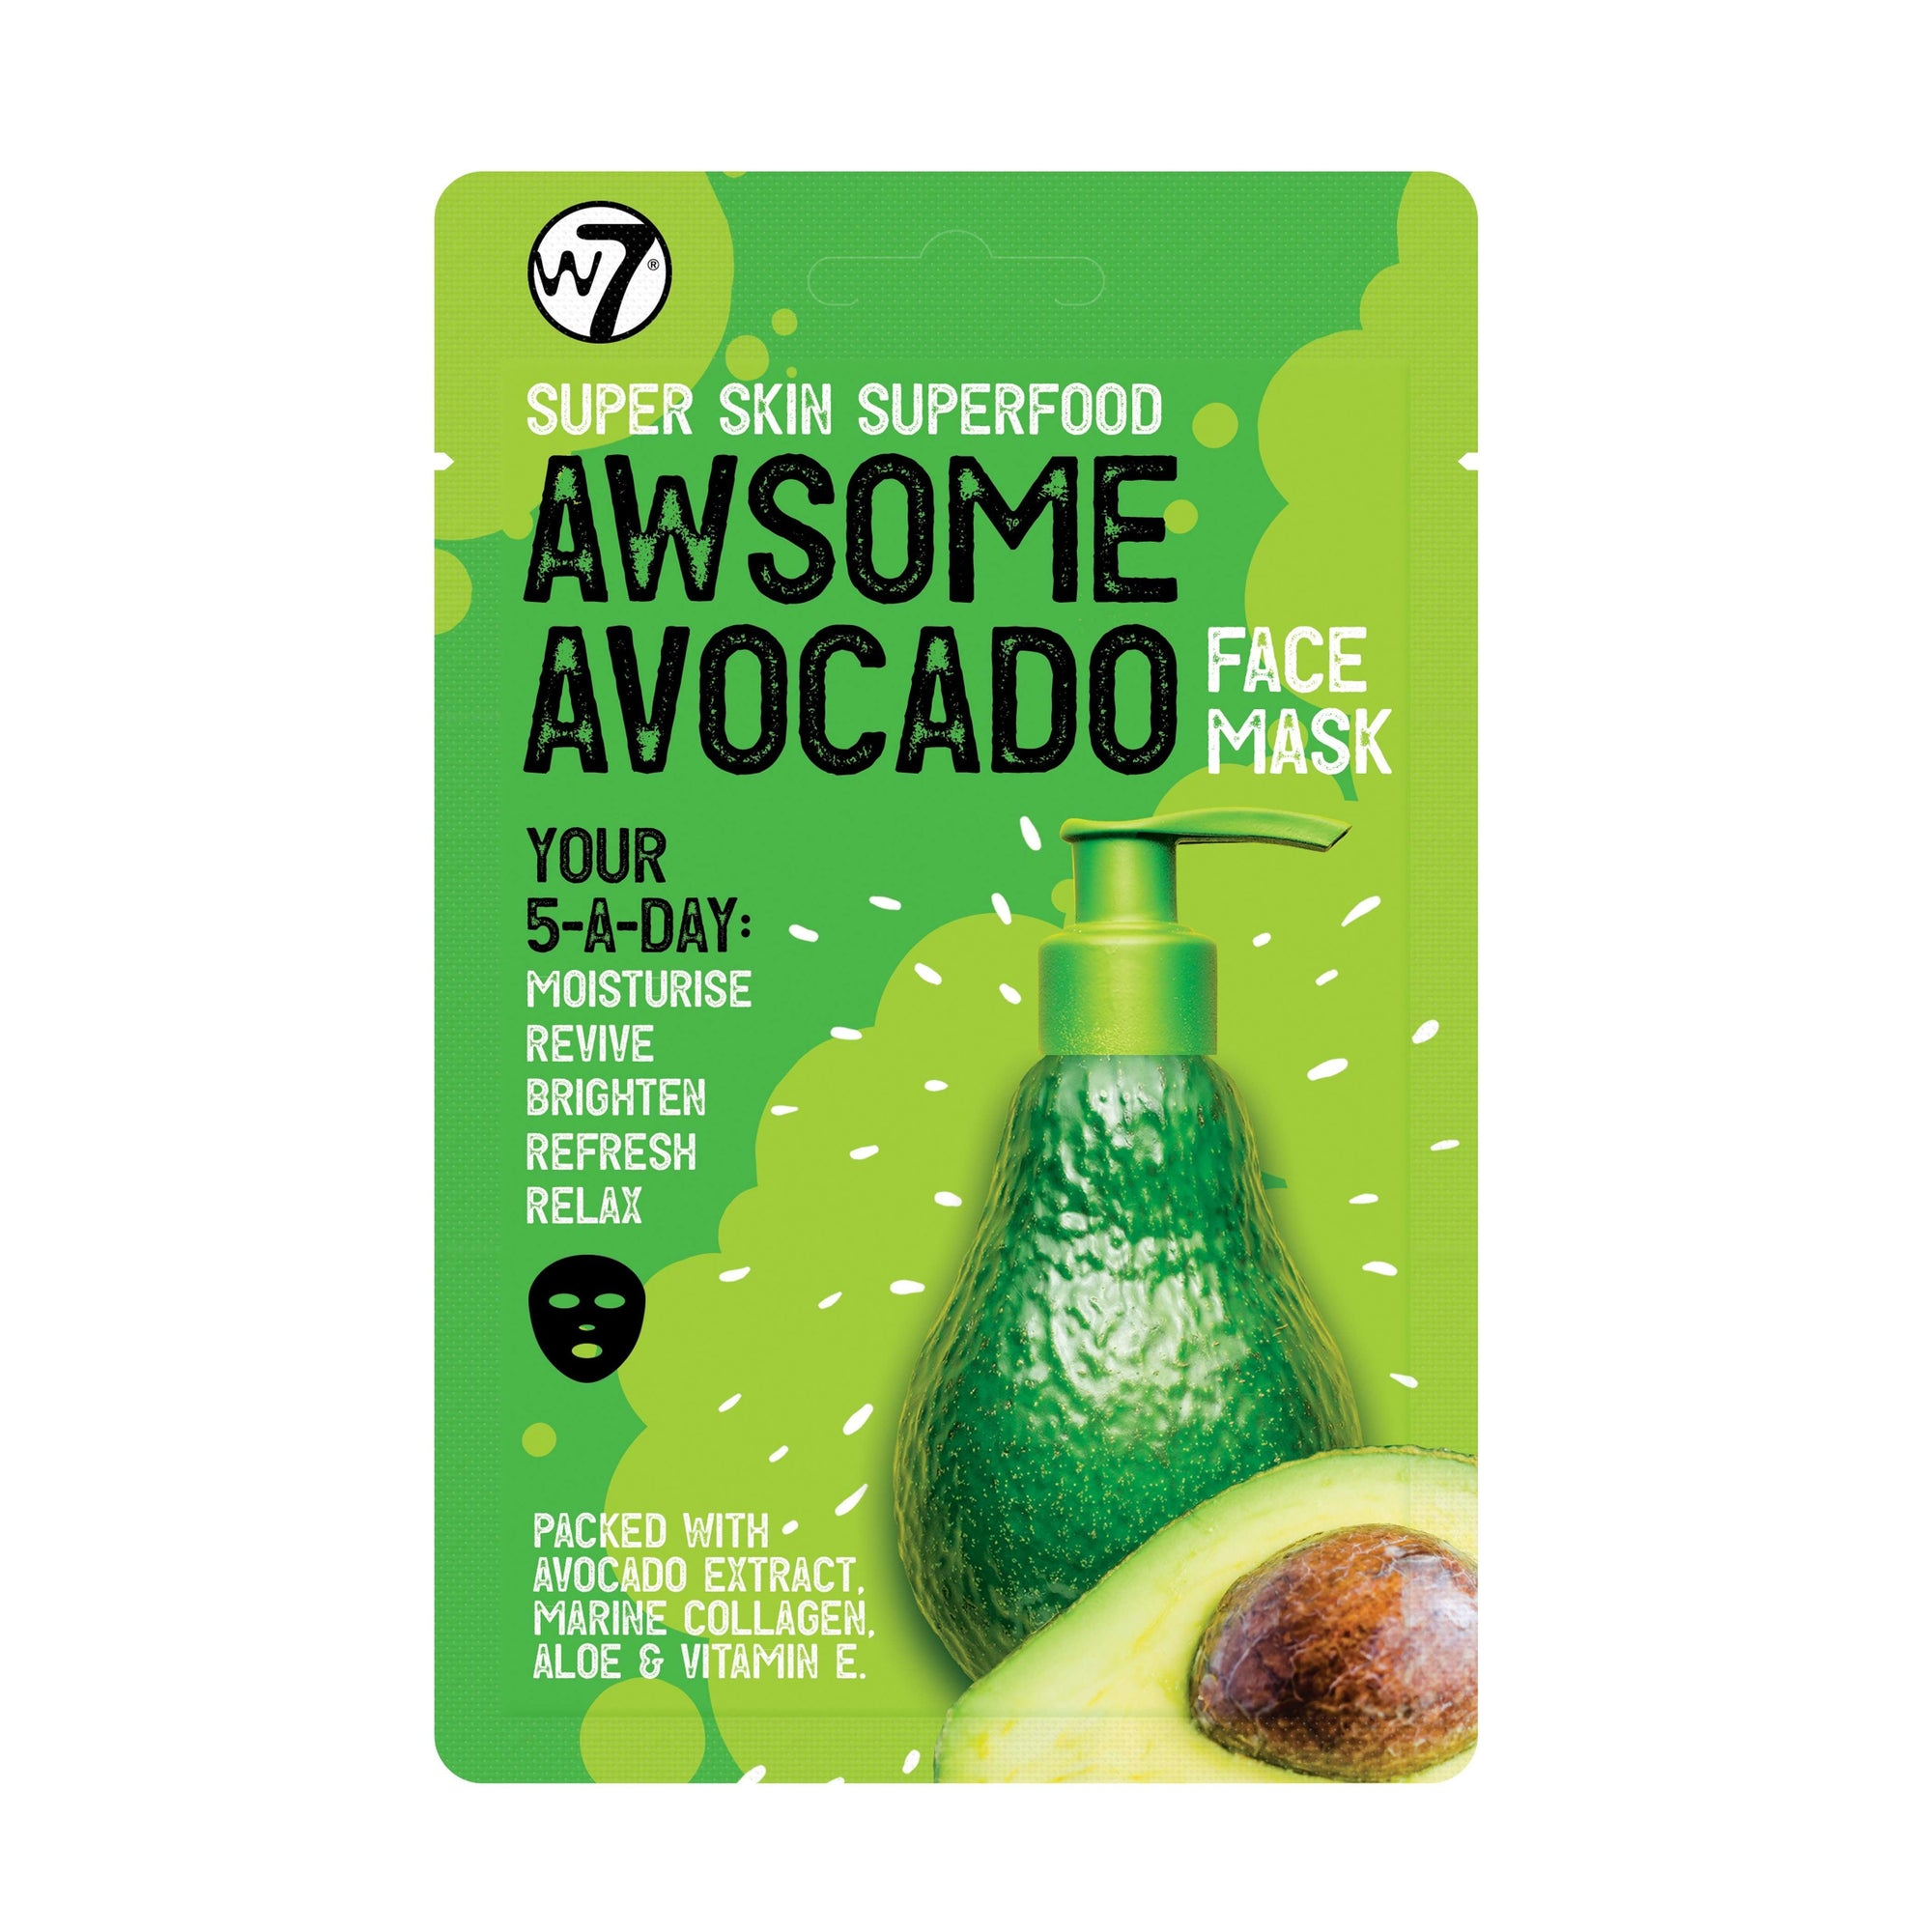 W7 Super Skin Superfood Awesome Avocado Sheet Mask